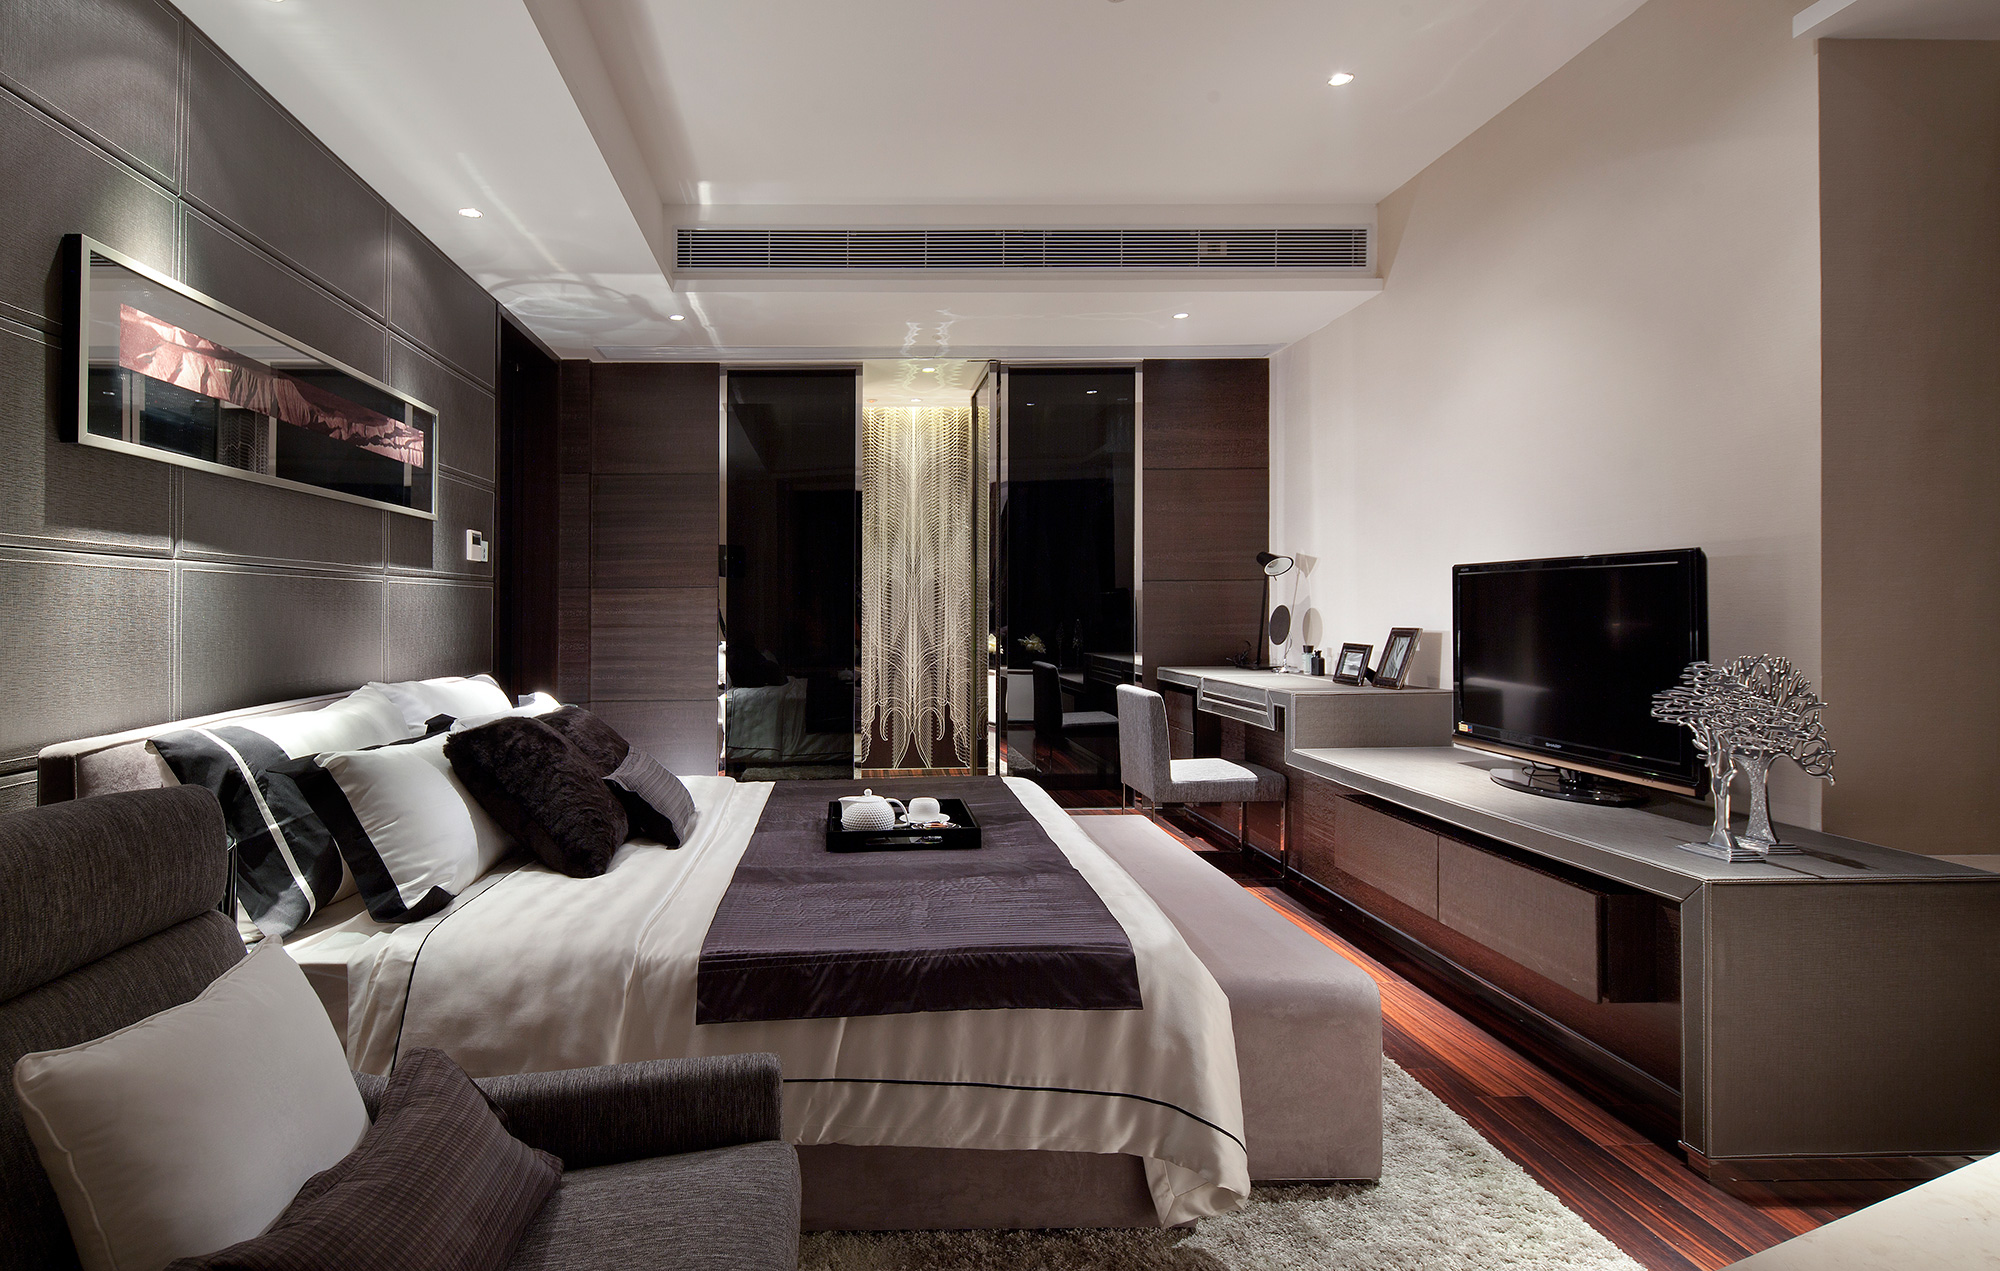 Bedroom Design 15 beautiful mesmerizing bedroom designs